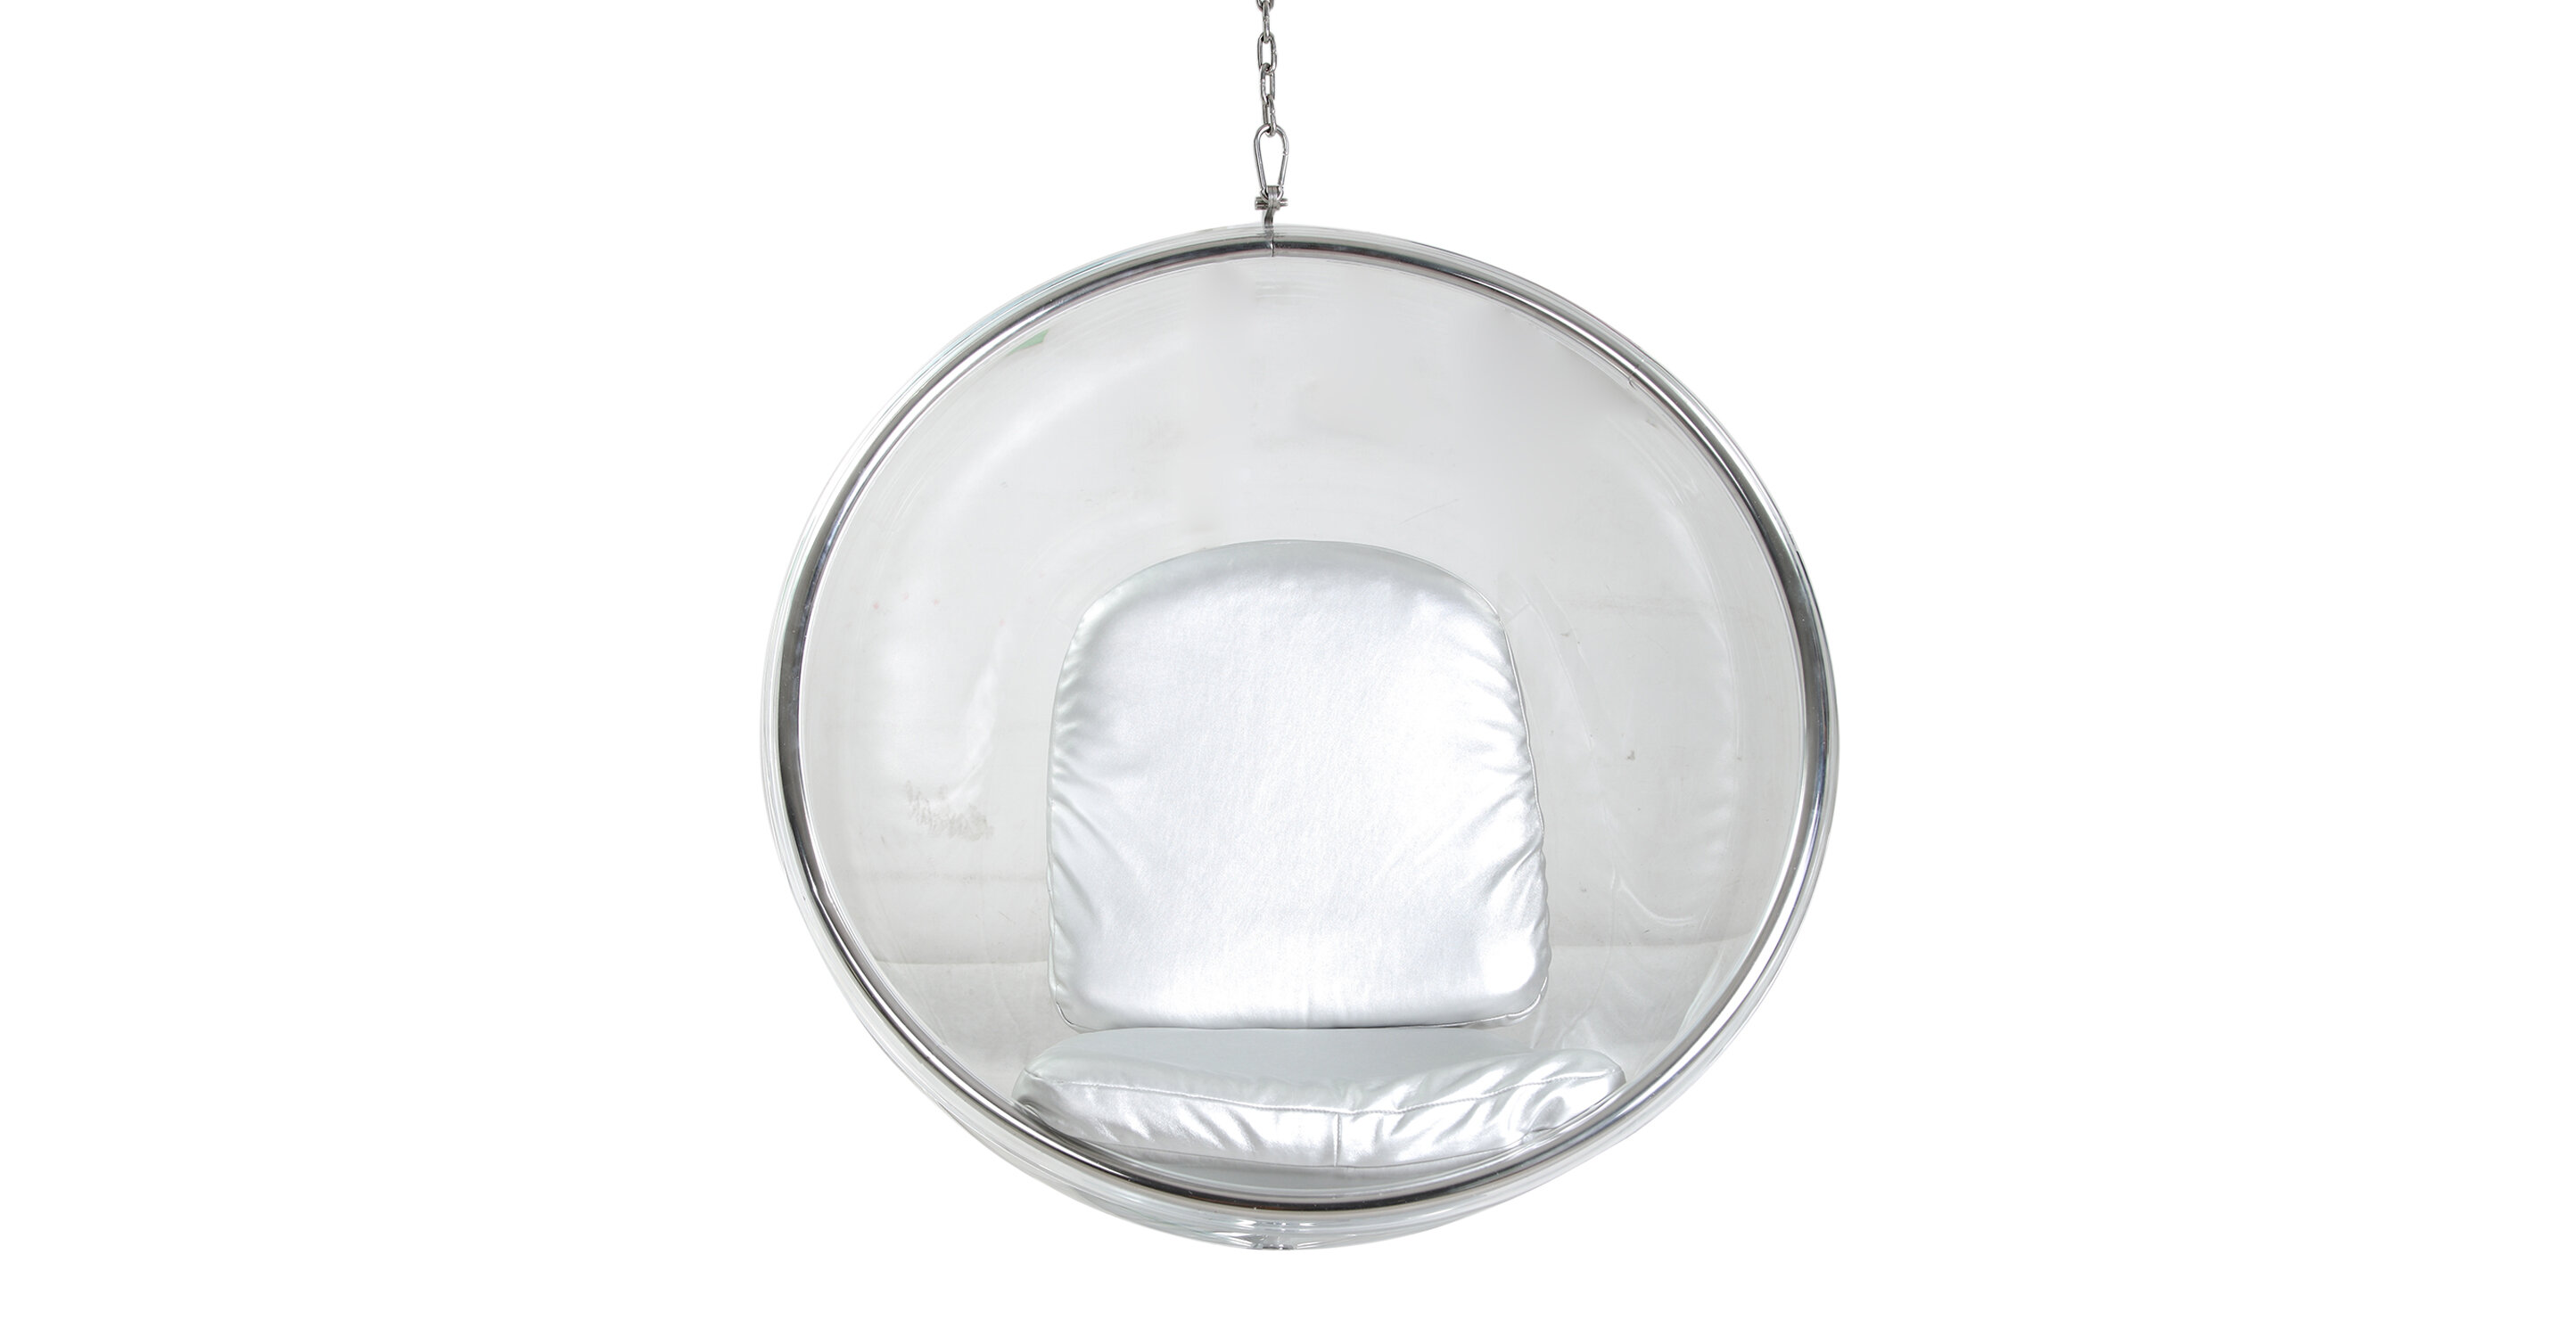 Beau Kardiel Bubble Style Hanging Ceiling Balloon Chair U0026 Reviews | Wayfair